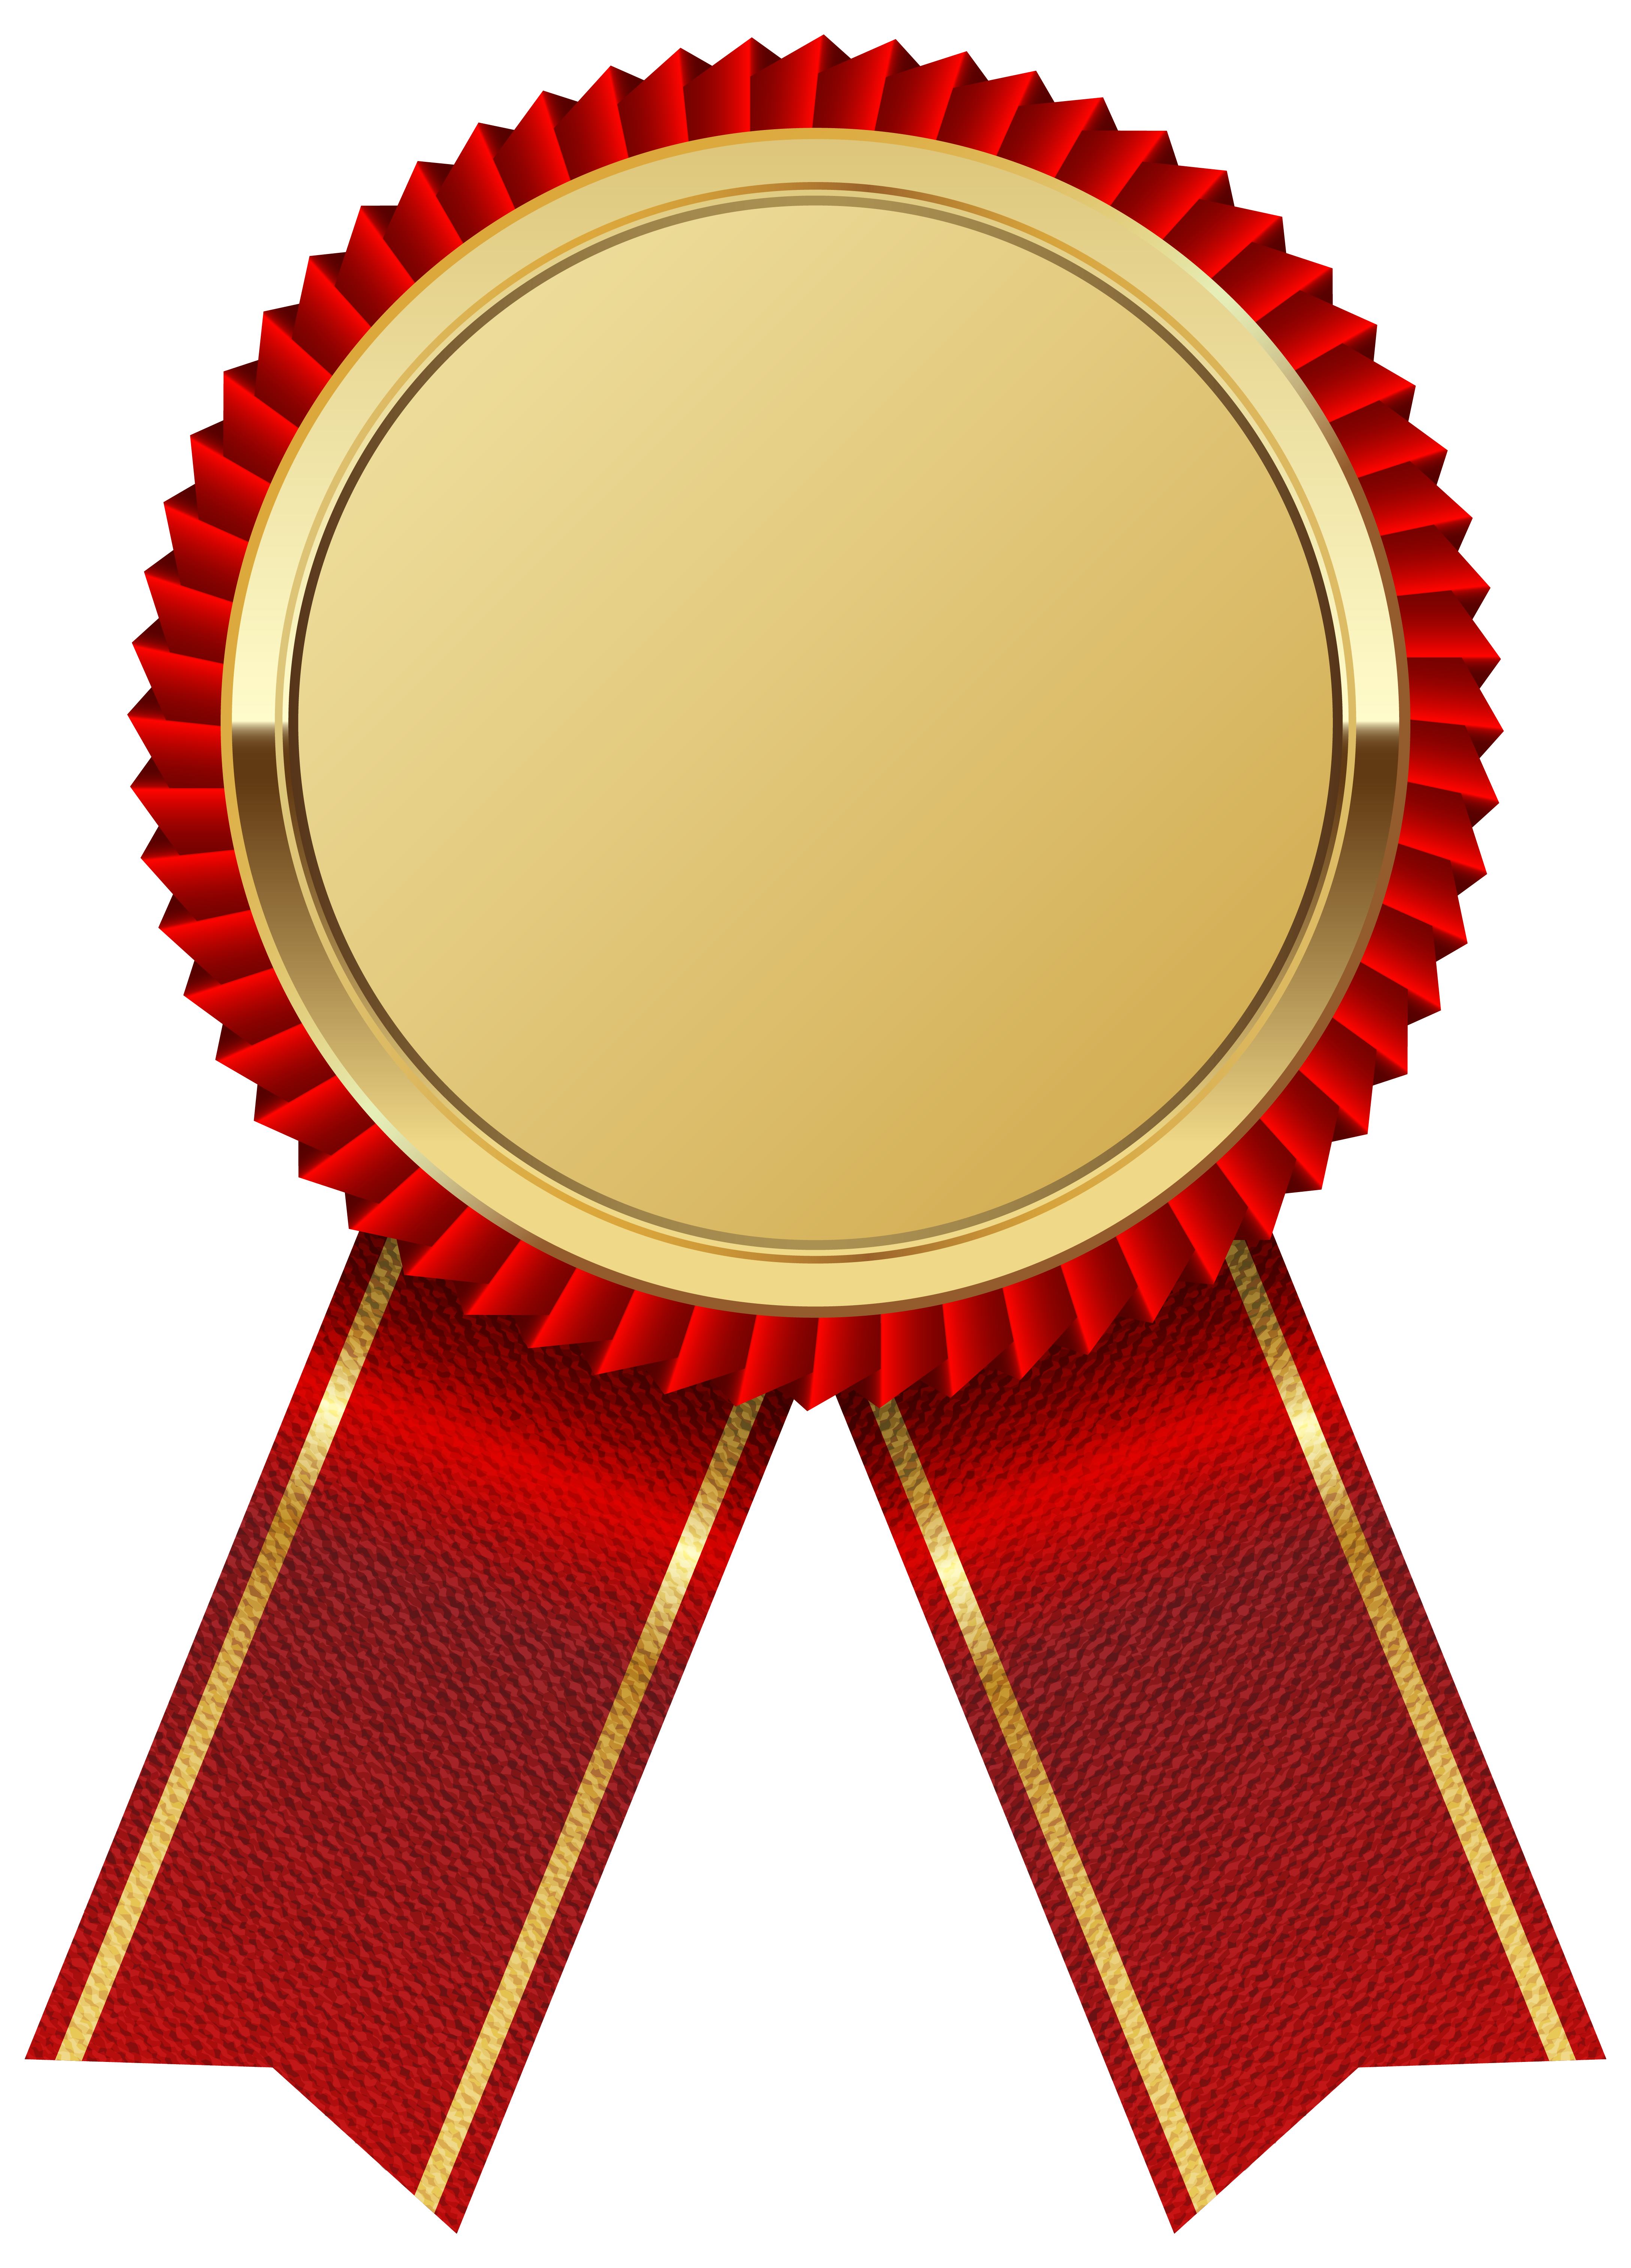 Gold medal with red. Win clipart french window